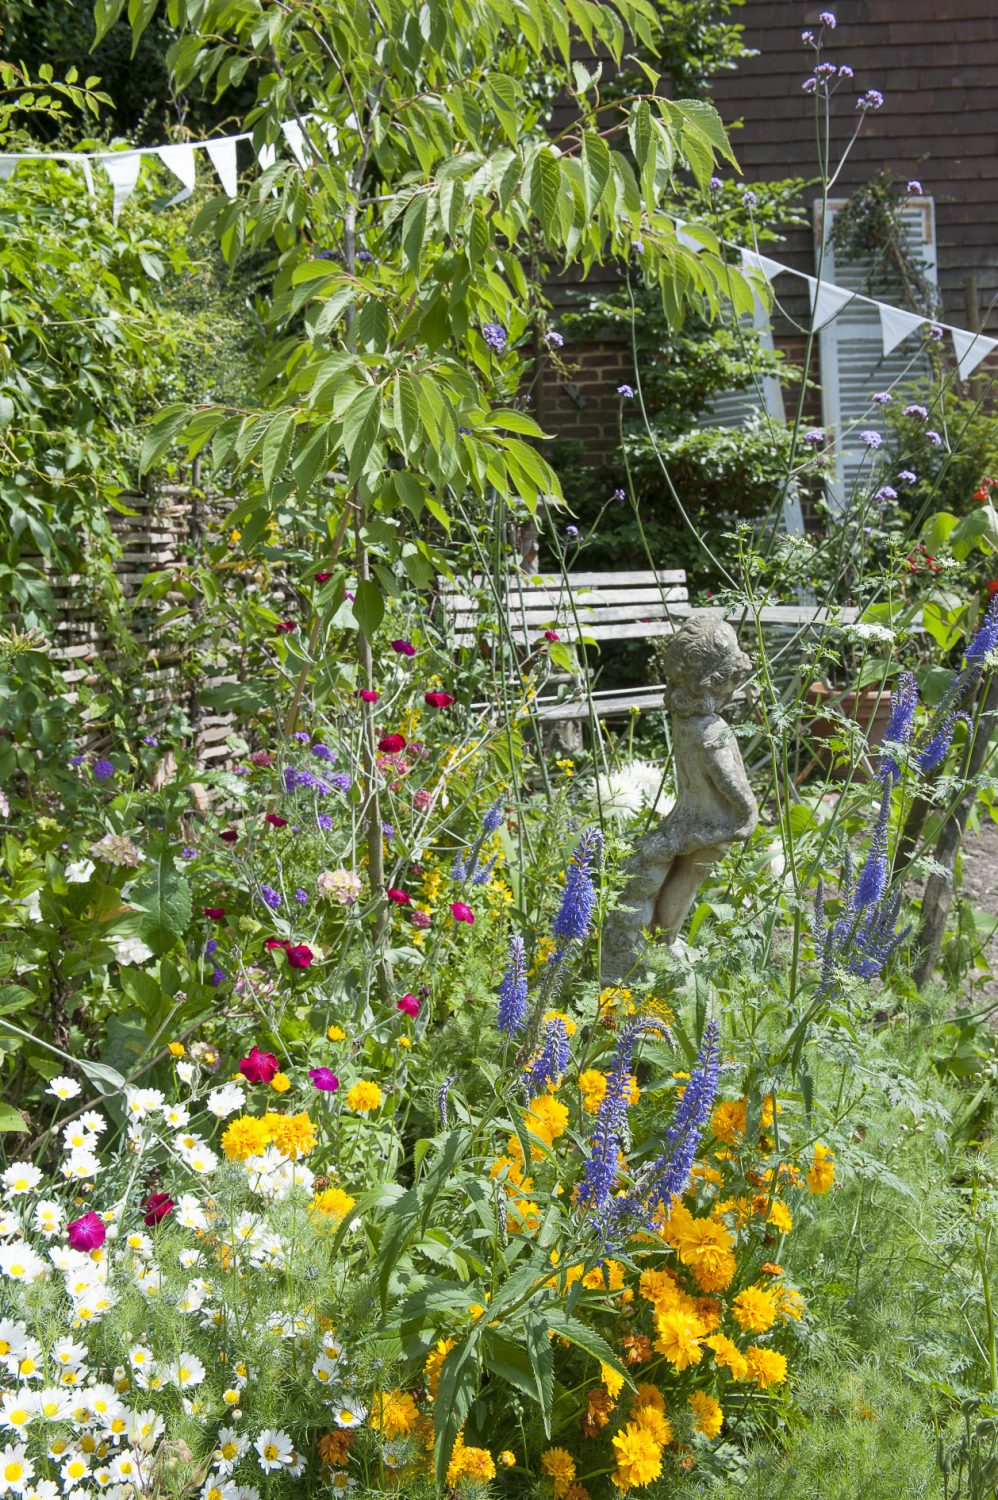 The garden now home to vibrant flower beds and swathes of bunting